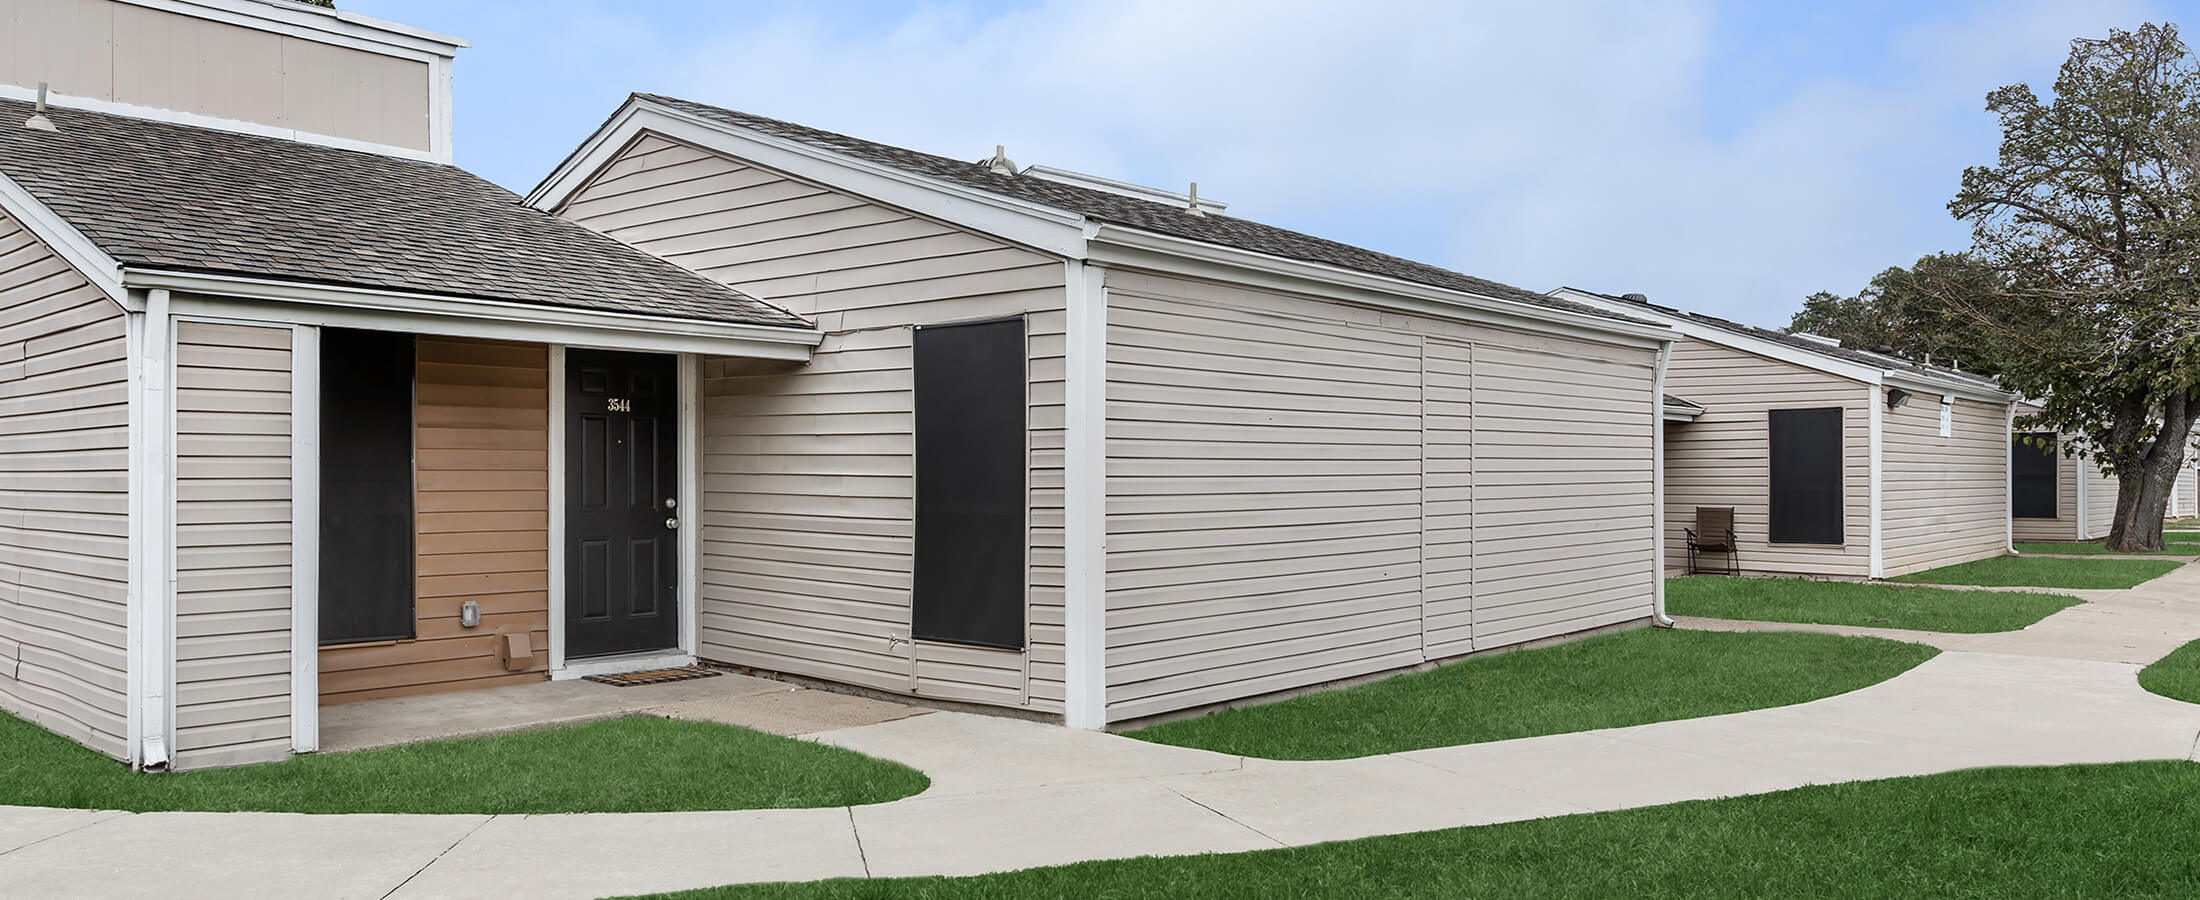 Swell Rolling Meadows Apartments In Arlington Tx Download Free Architecture Designs Scobabritishbridgeorg